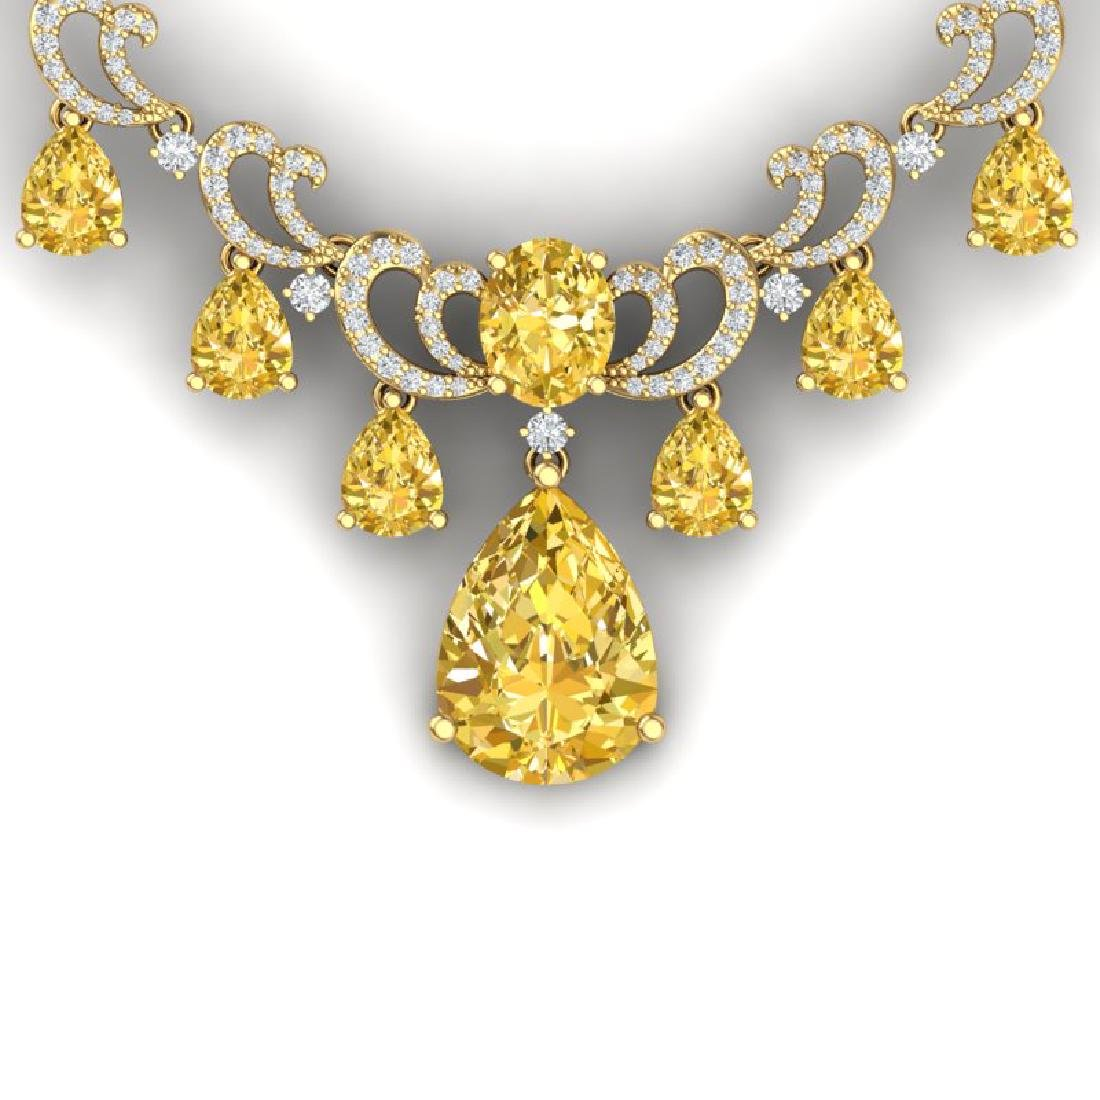 33.38 CTW Royalty Canary Citrine & VS Diamond Necklace